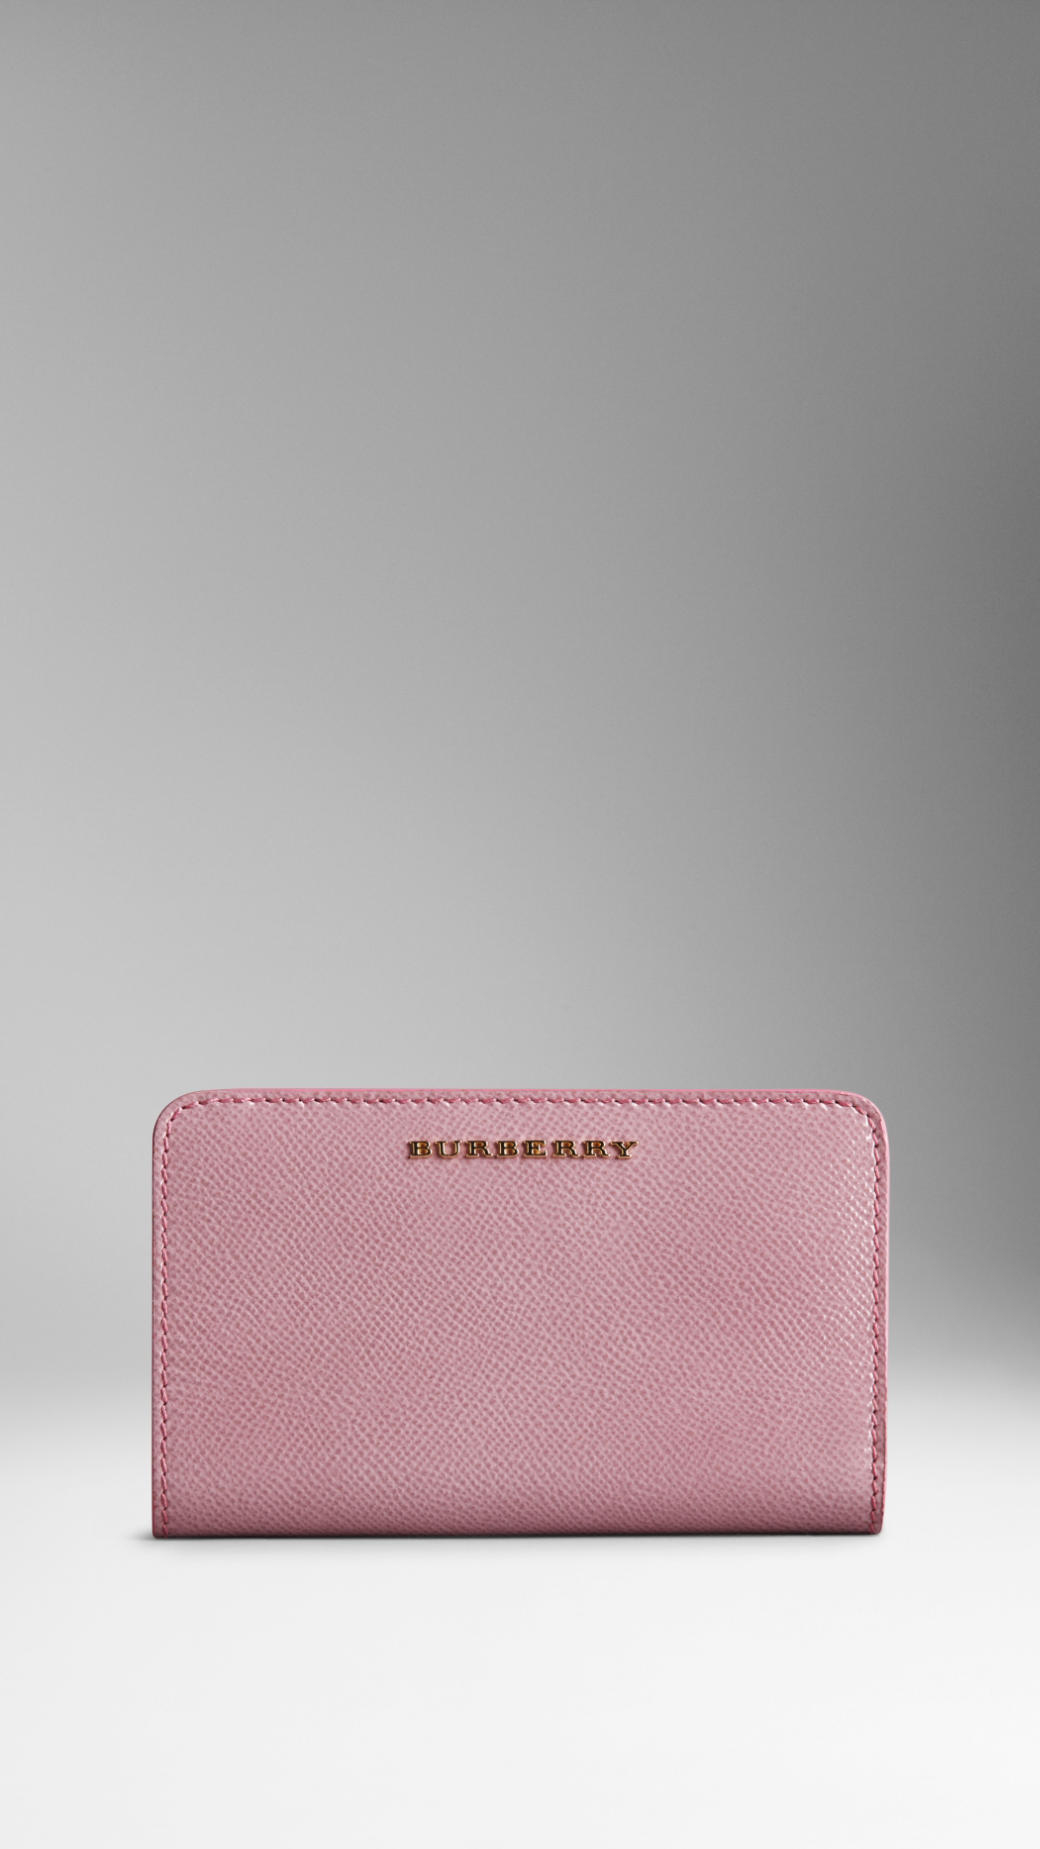 burberry wallets outlet s1ll  burberry pink wallet burberry pink wallet